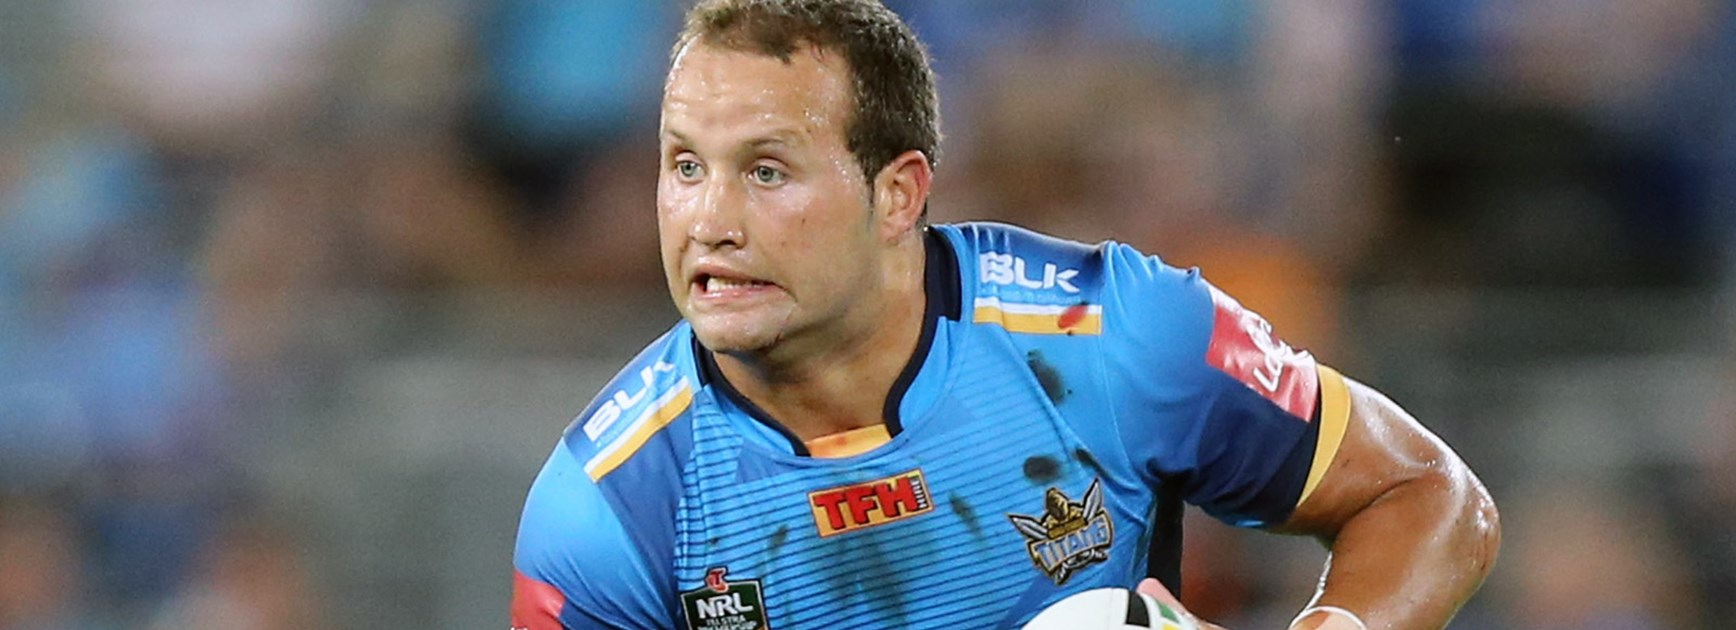 Tyrone Roberts in action for the Titans in his 100th NRL game on Saturday.